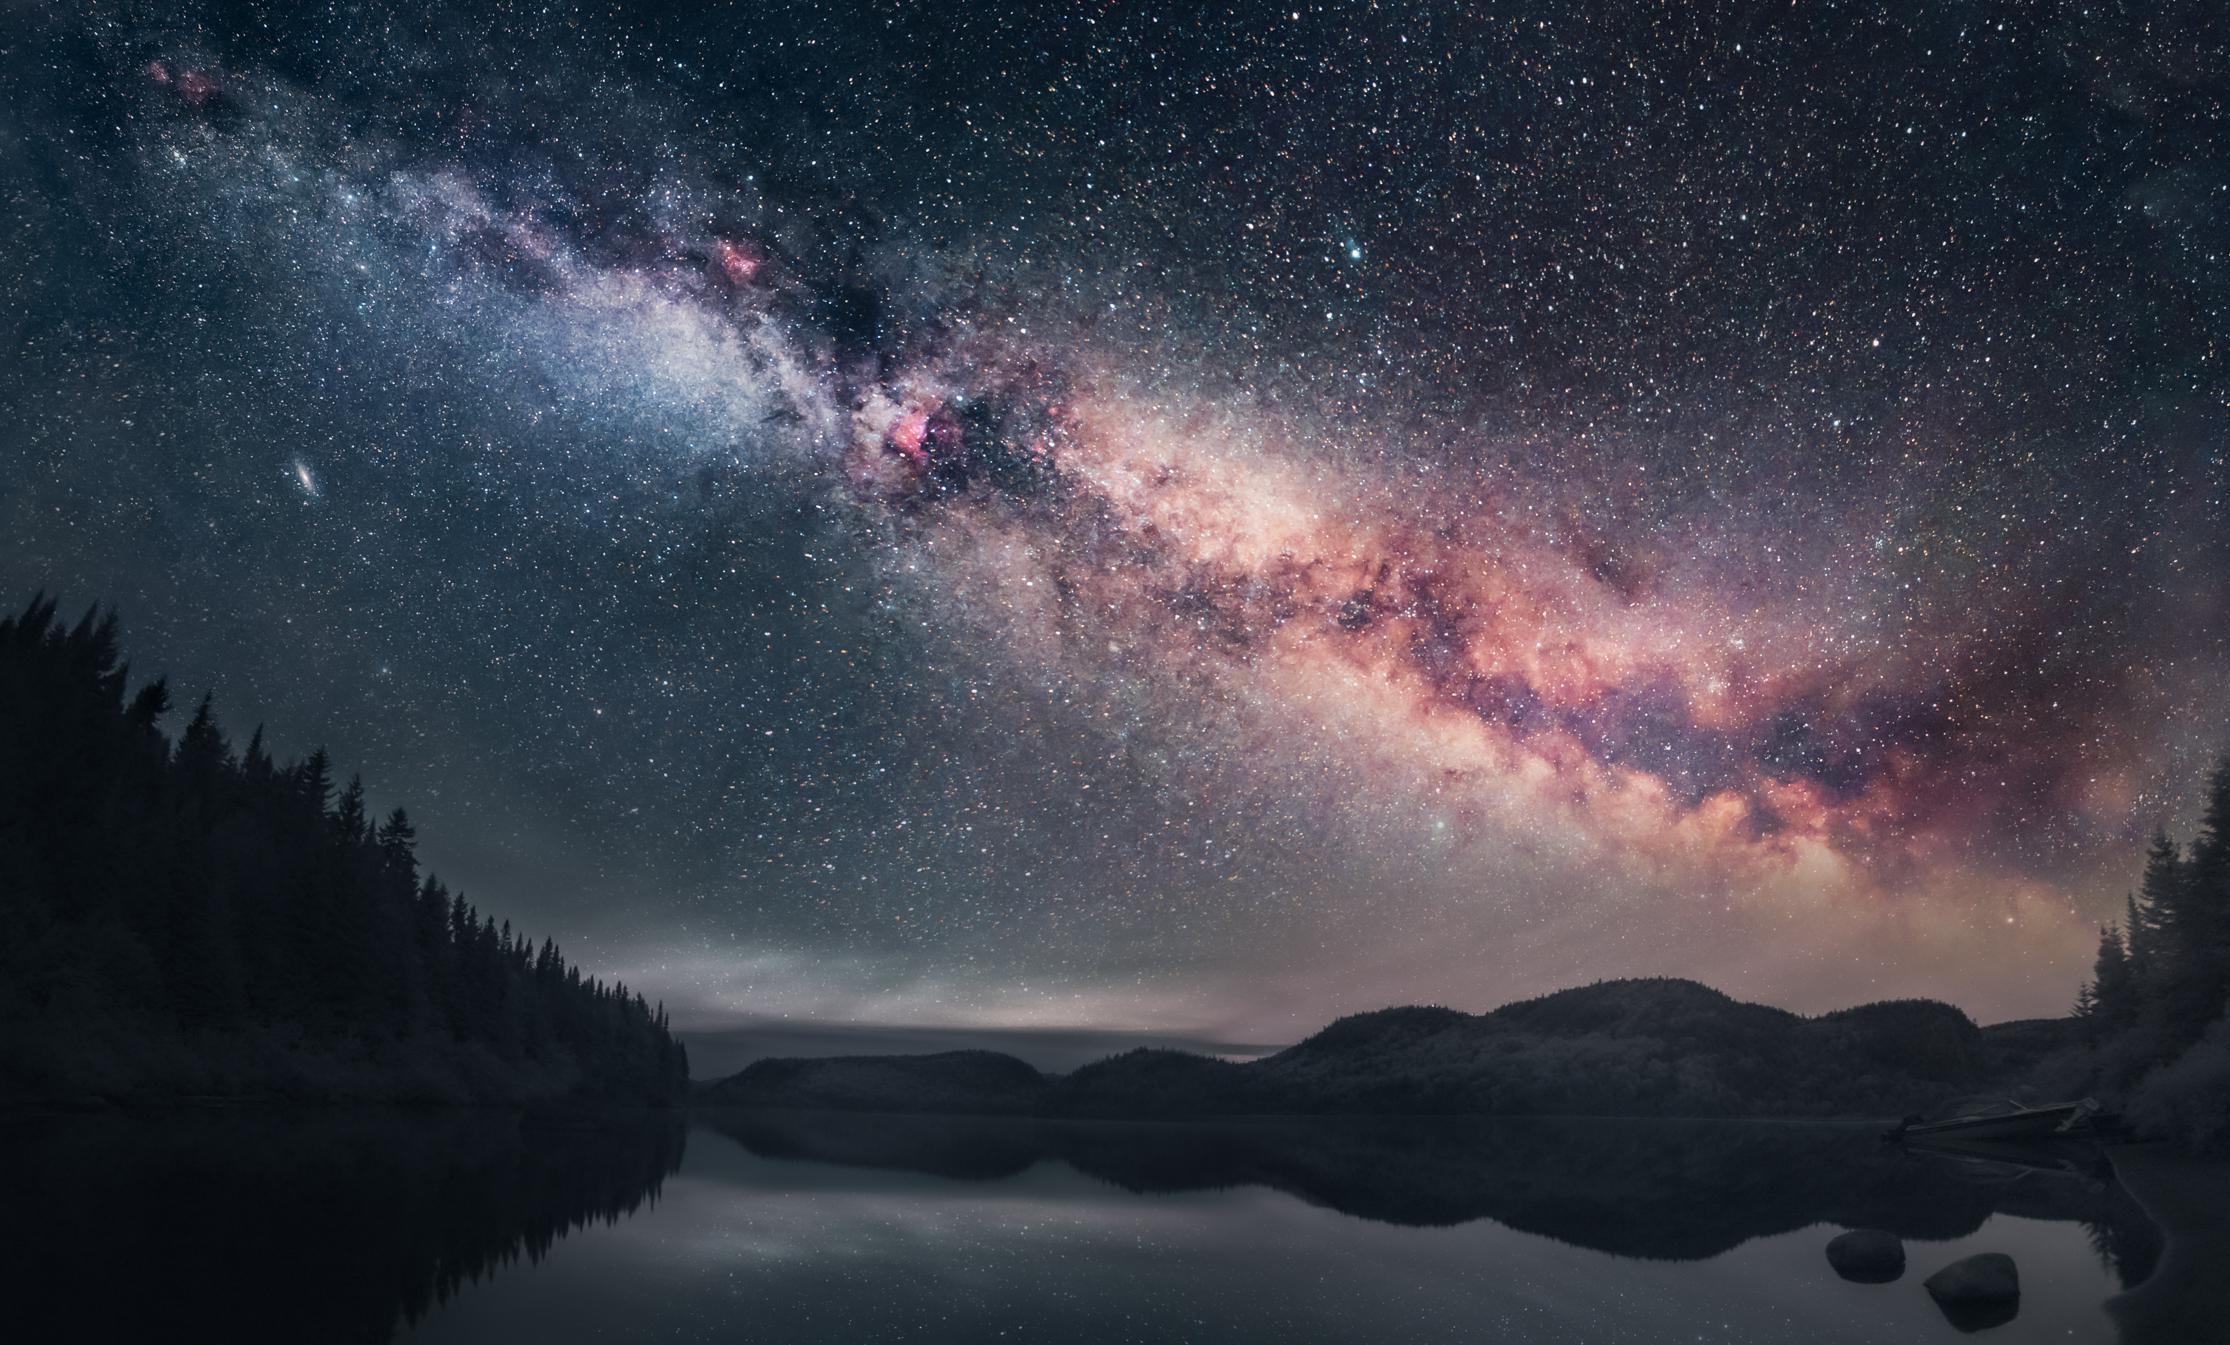 The Milky Way over Petit Lac Batiscan